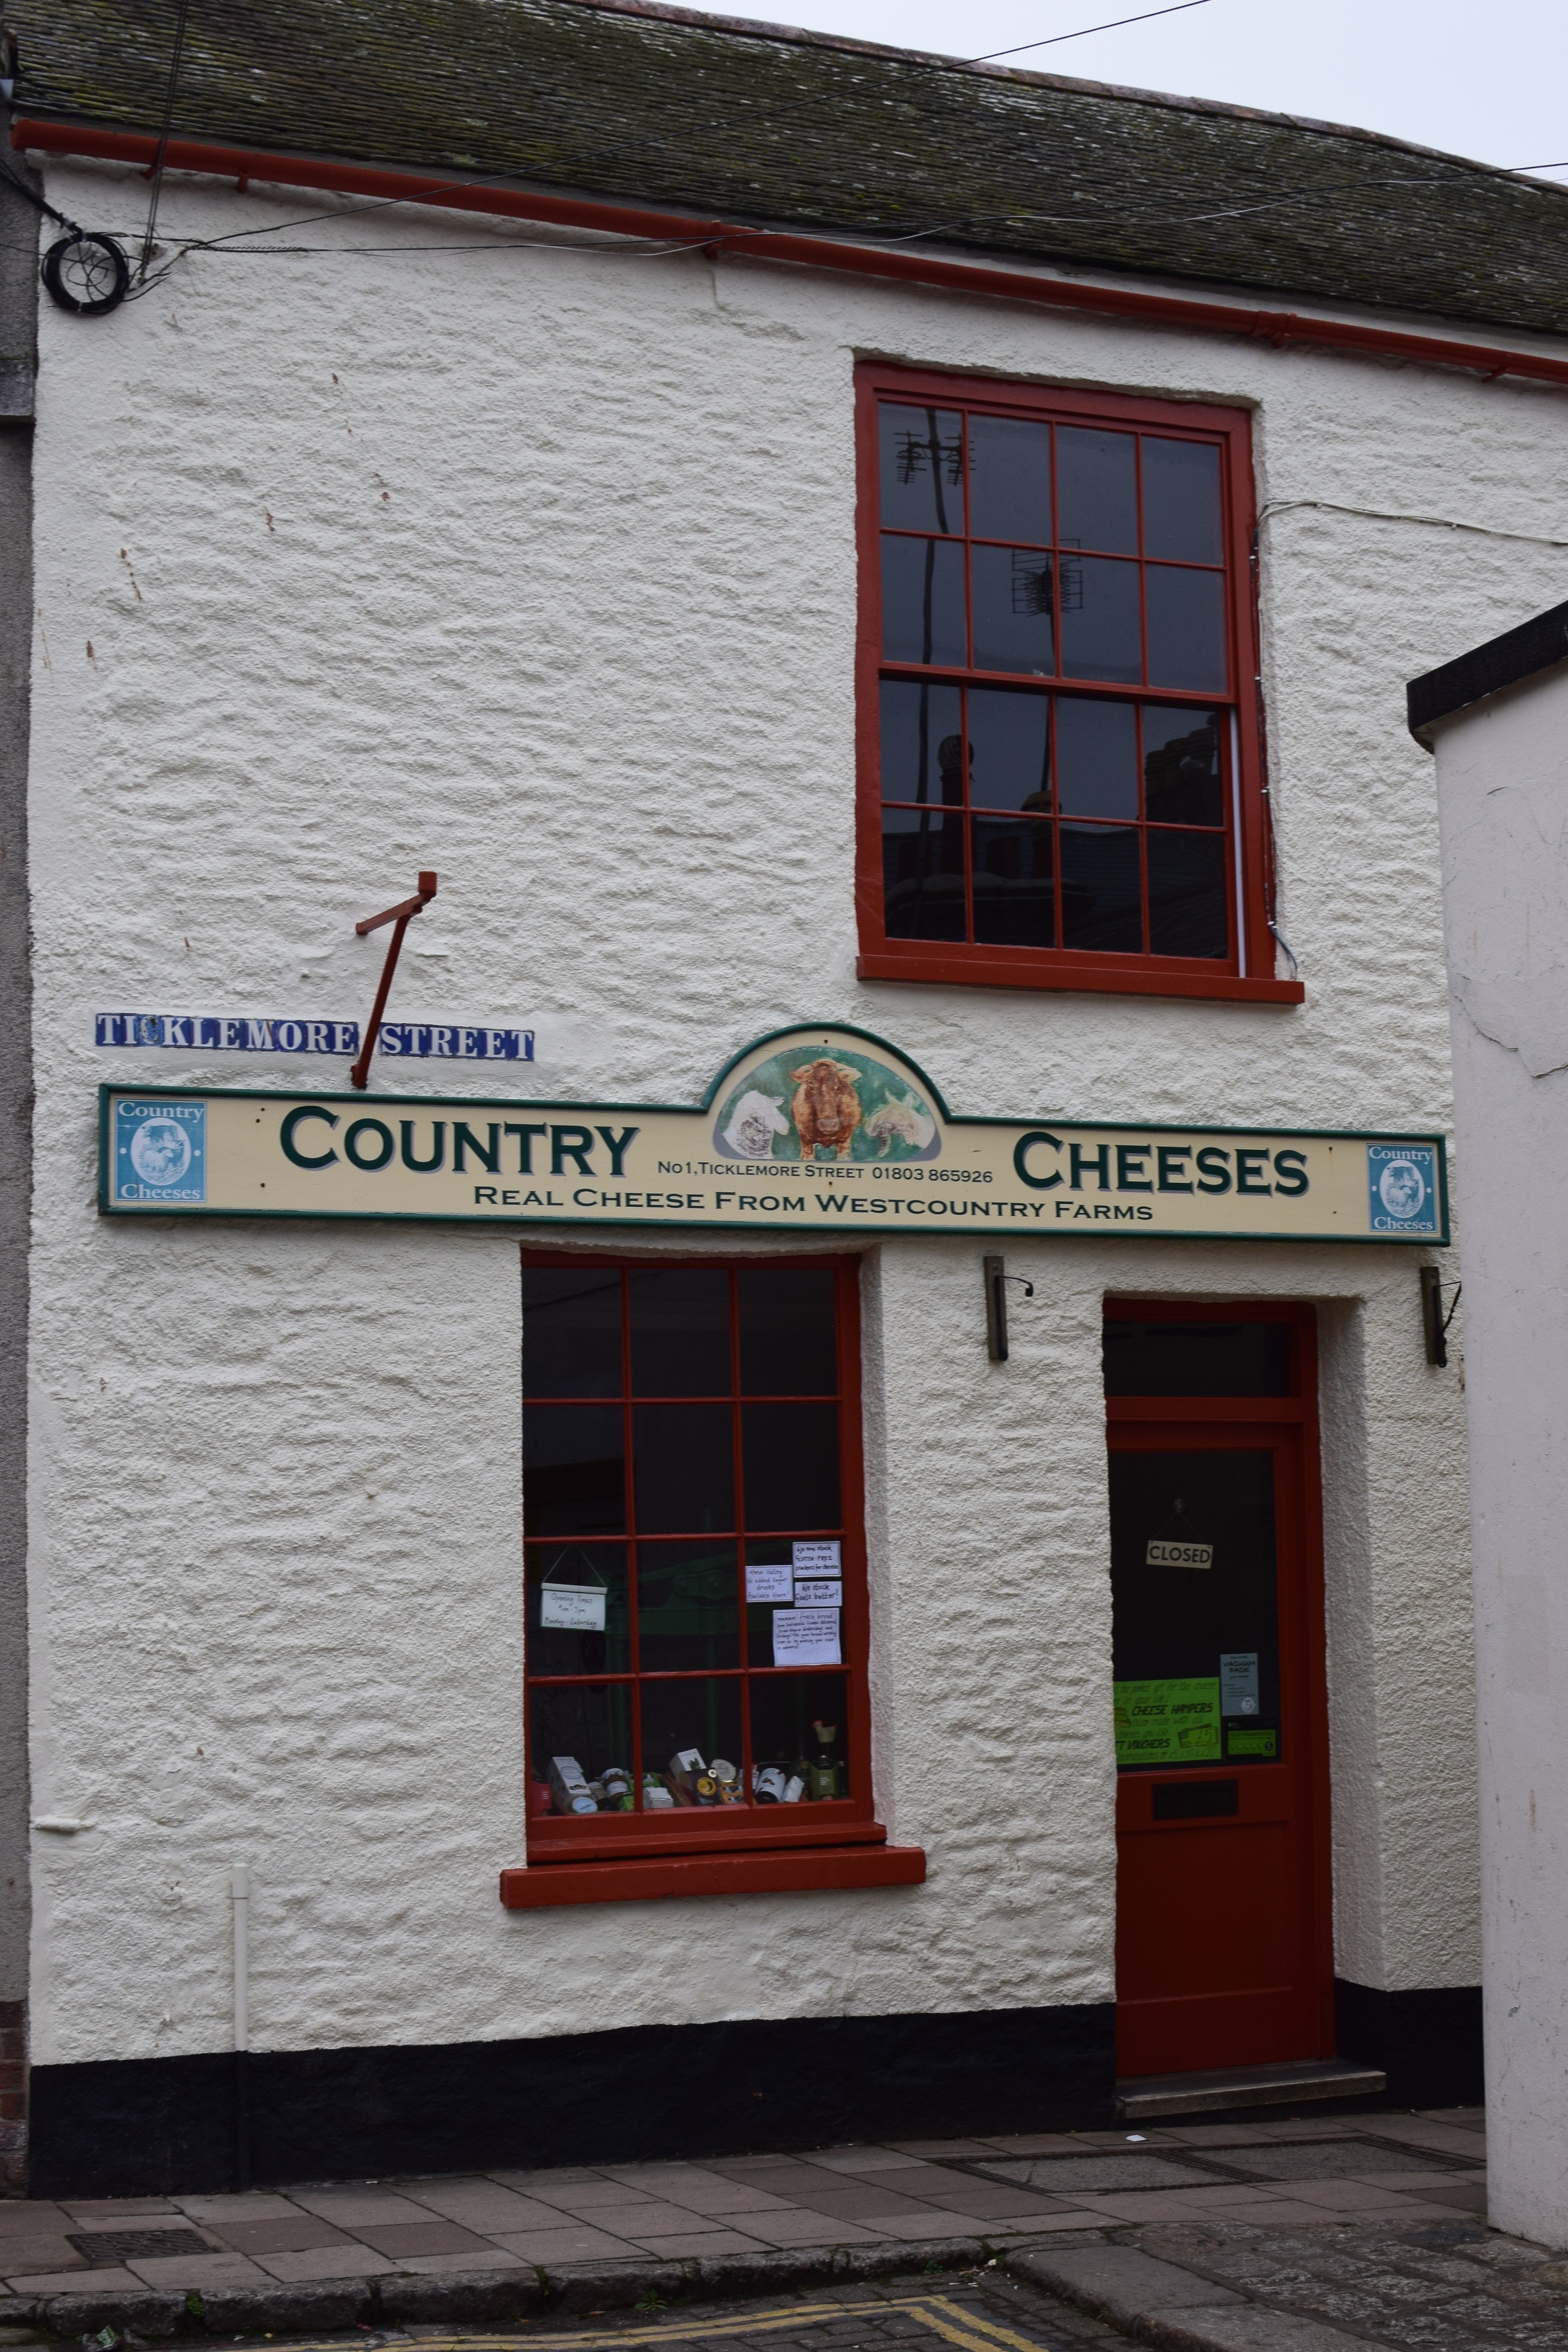 http://www.countrycheeses.co.uk/index.html